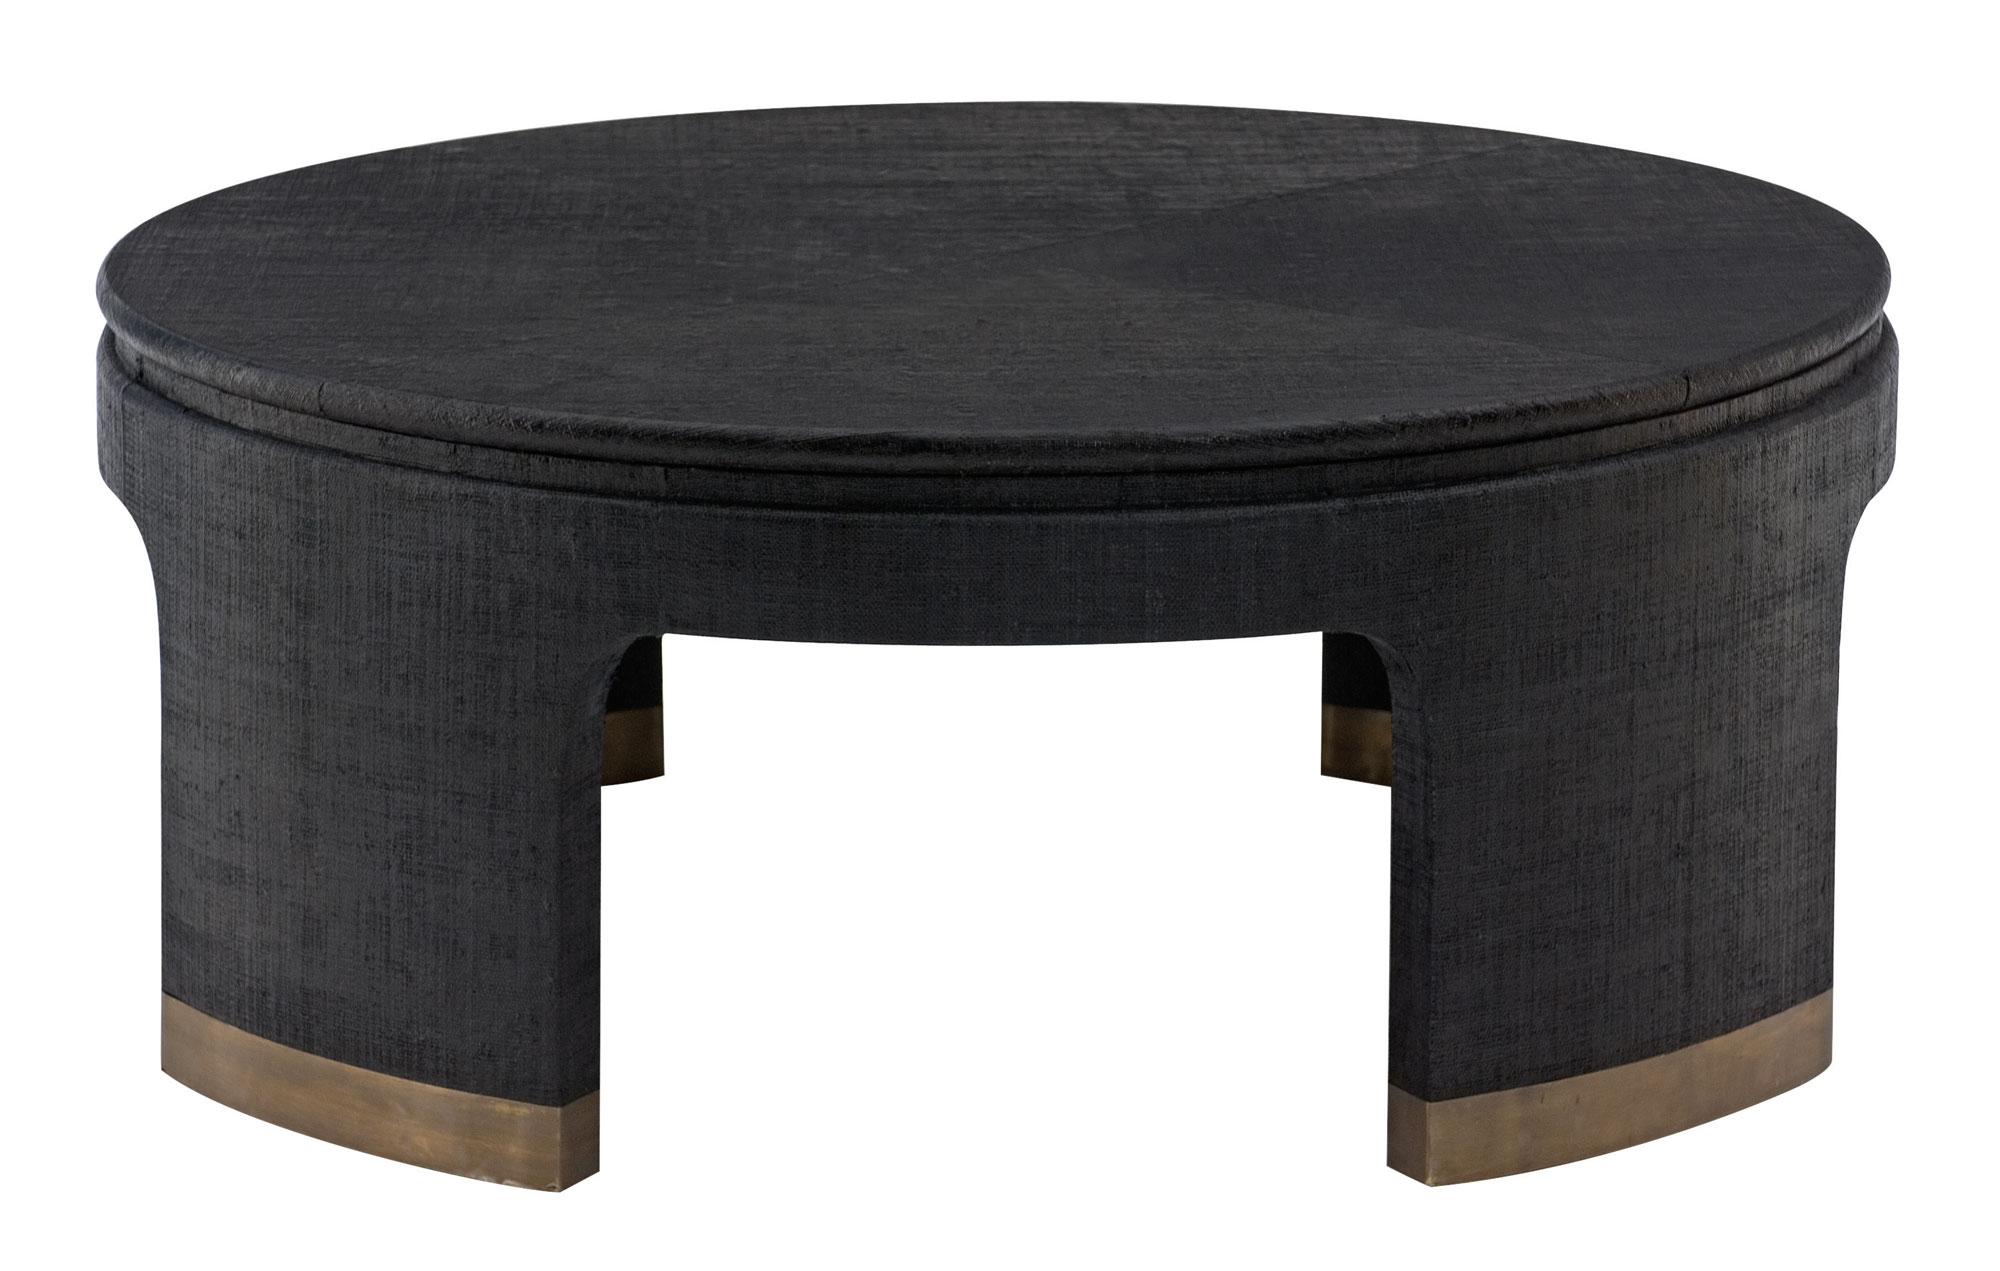 Round cocktail table bernhardt hospitality Round cocktail table